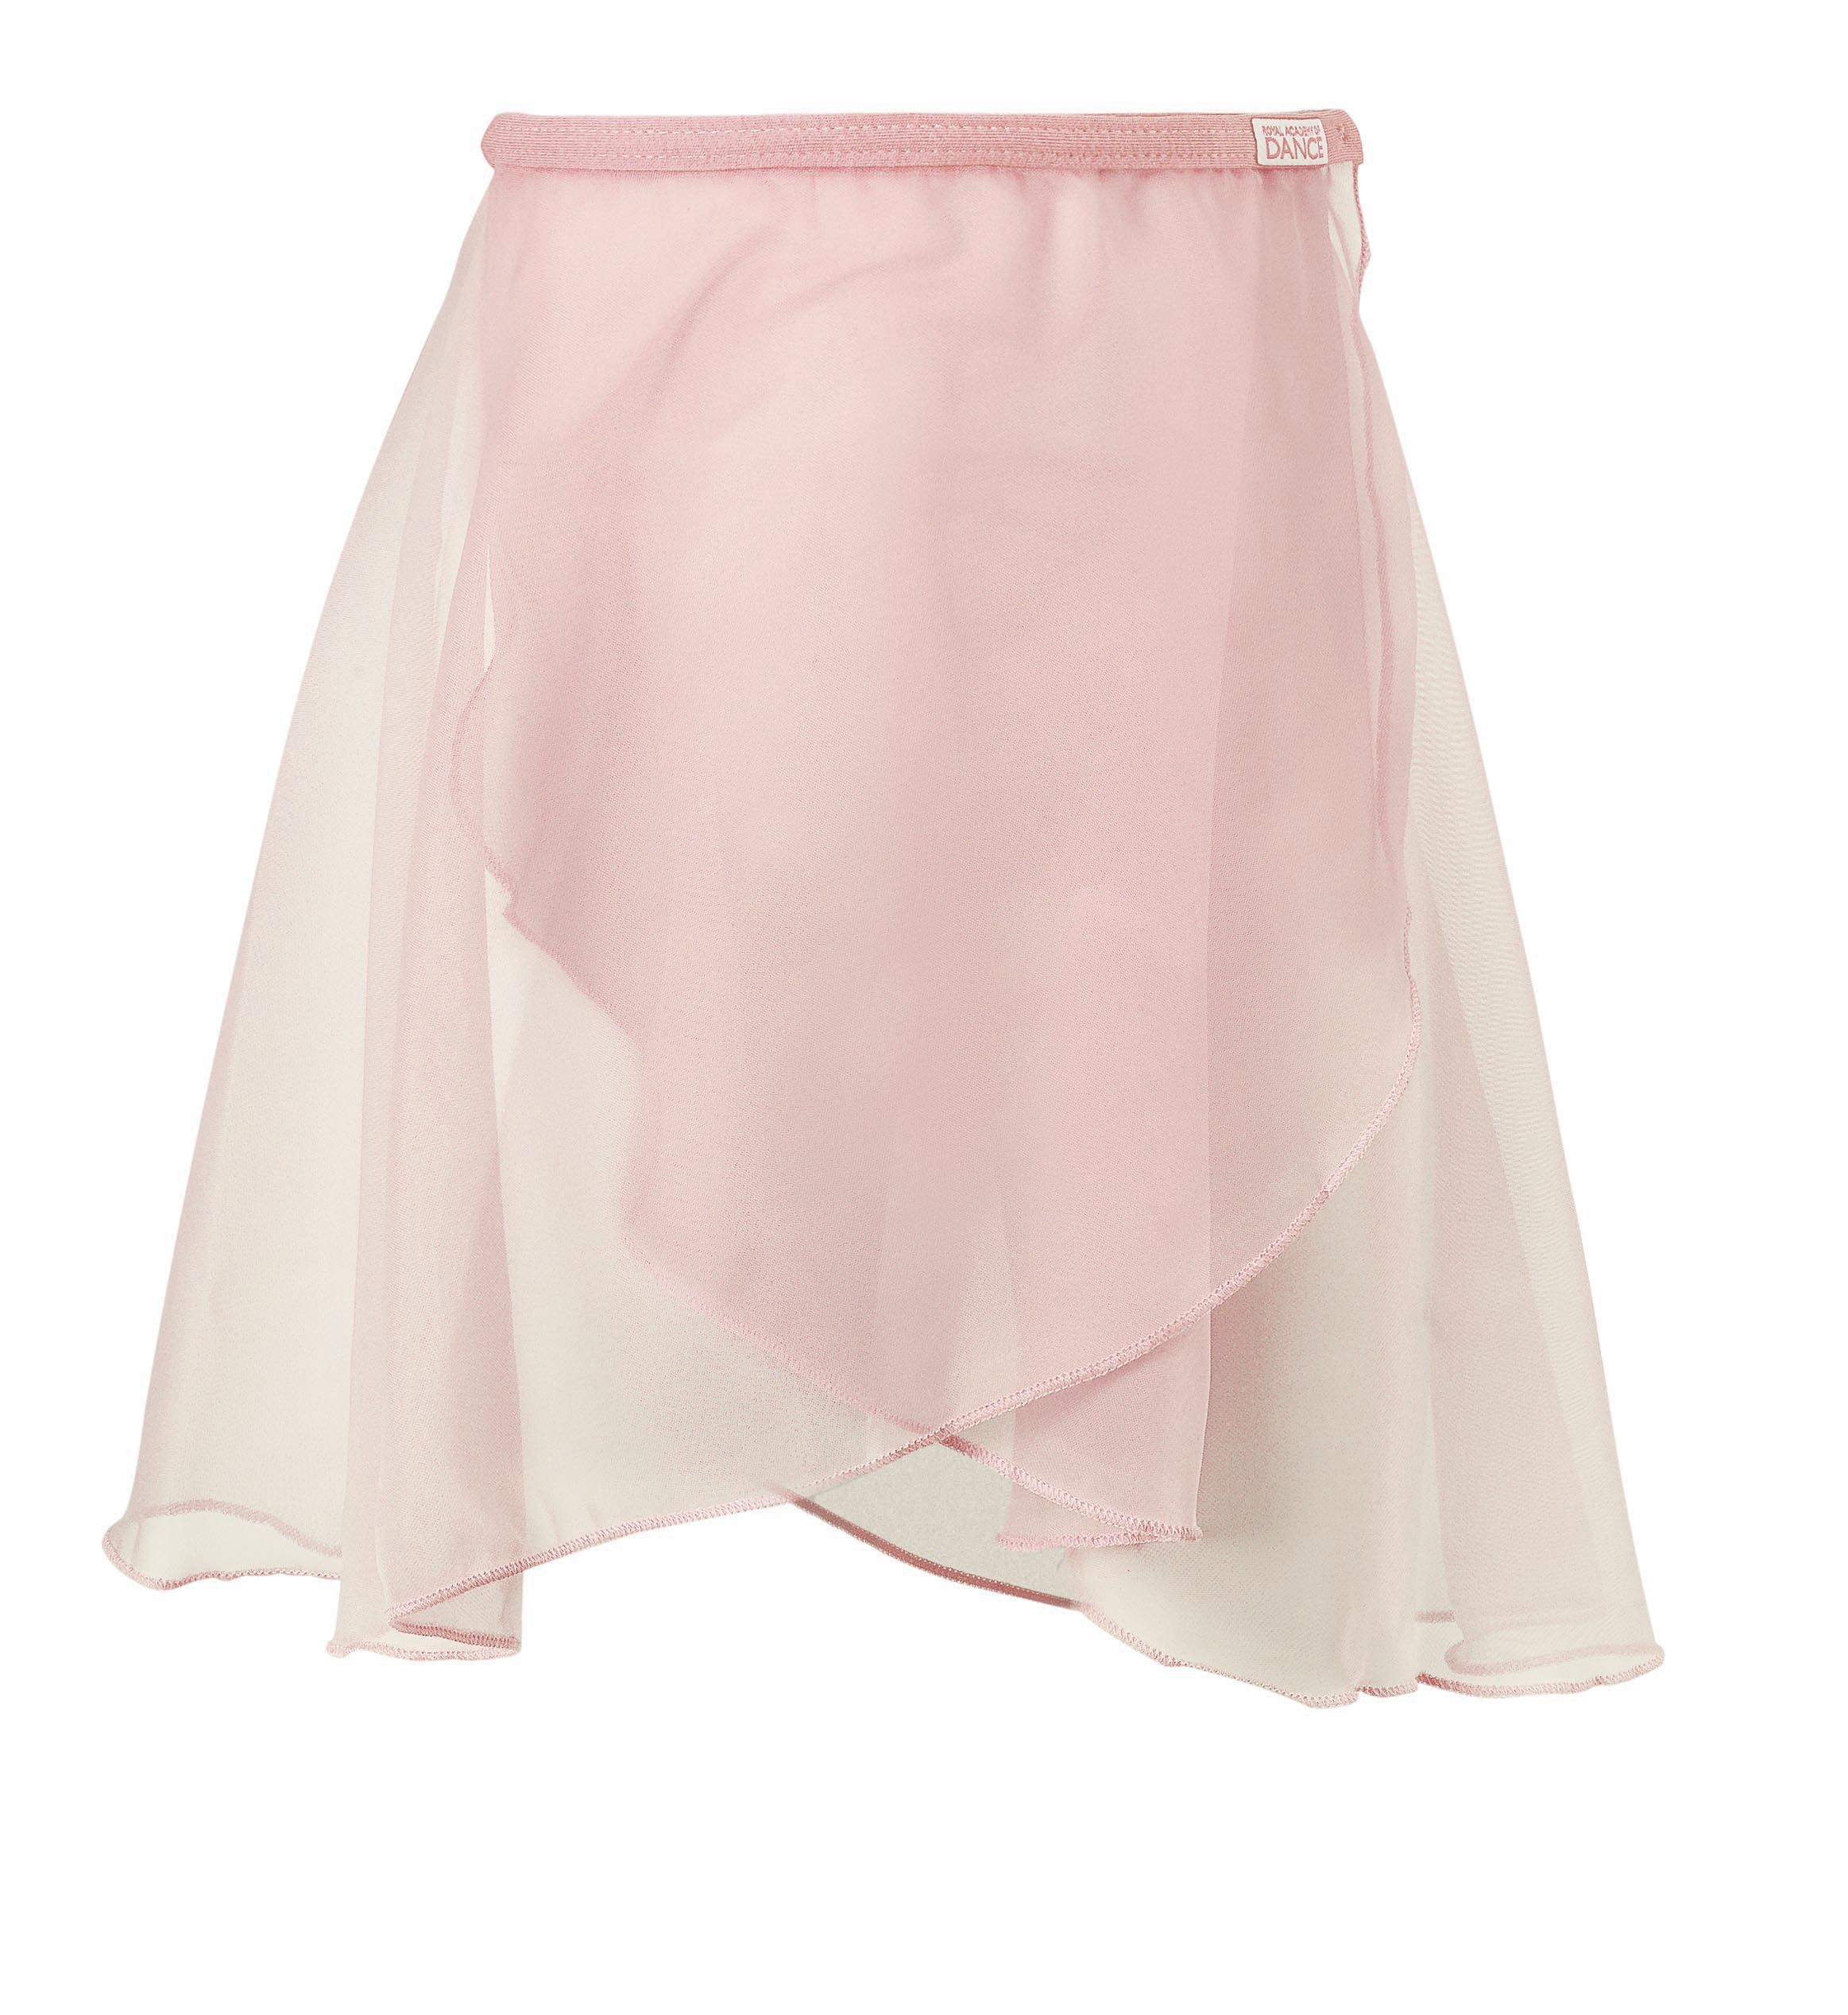 (a) Pink Skirt for Pre-Primary, Primary and Introductory Ballet